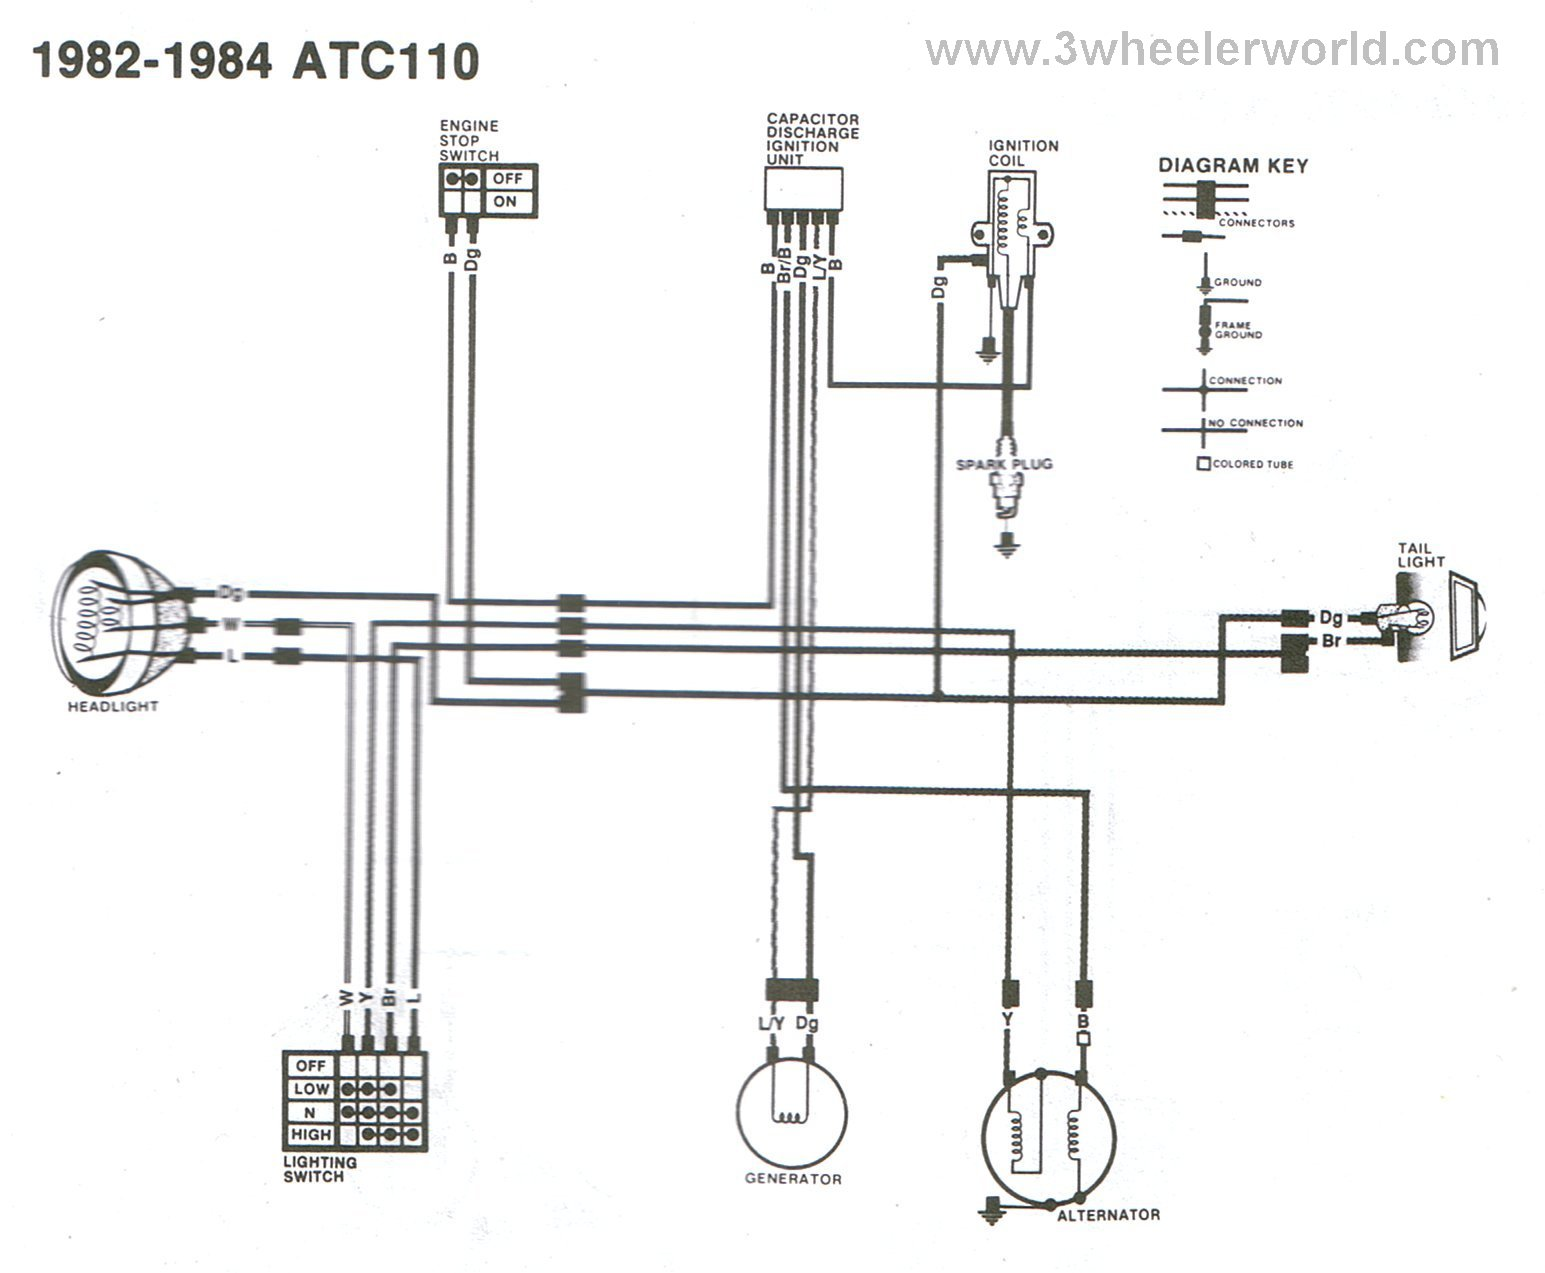 7A07D1F Eagle 110 Atv Wiring Diagram | Wiring LibraryWiring Library